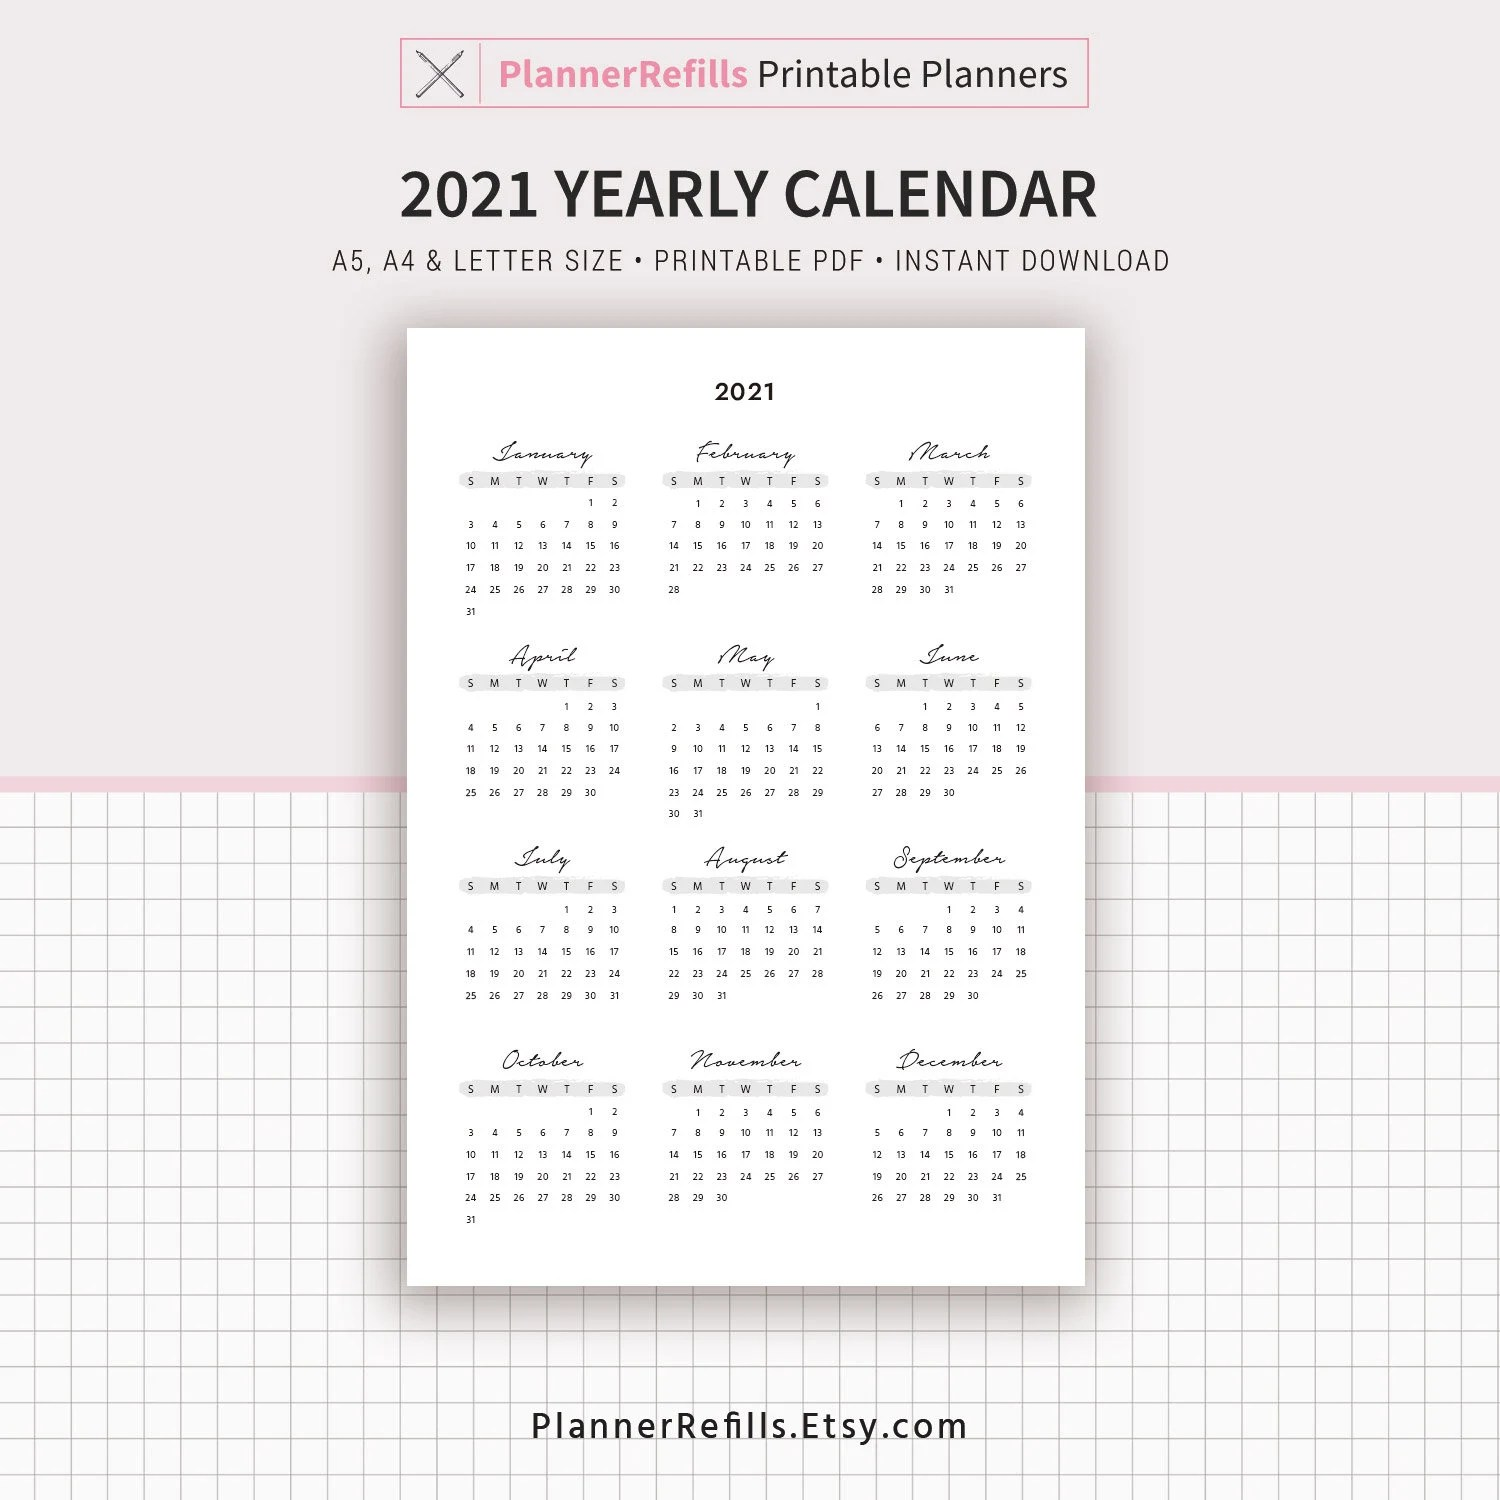 2021 Yearly Calendar 2022 Yearly Calendar Year at a Glance ...